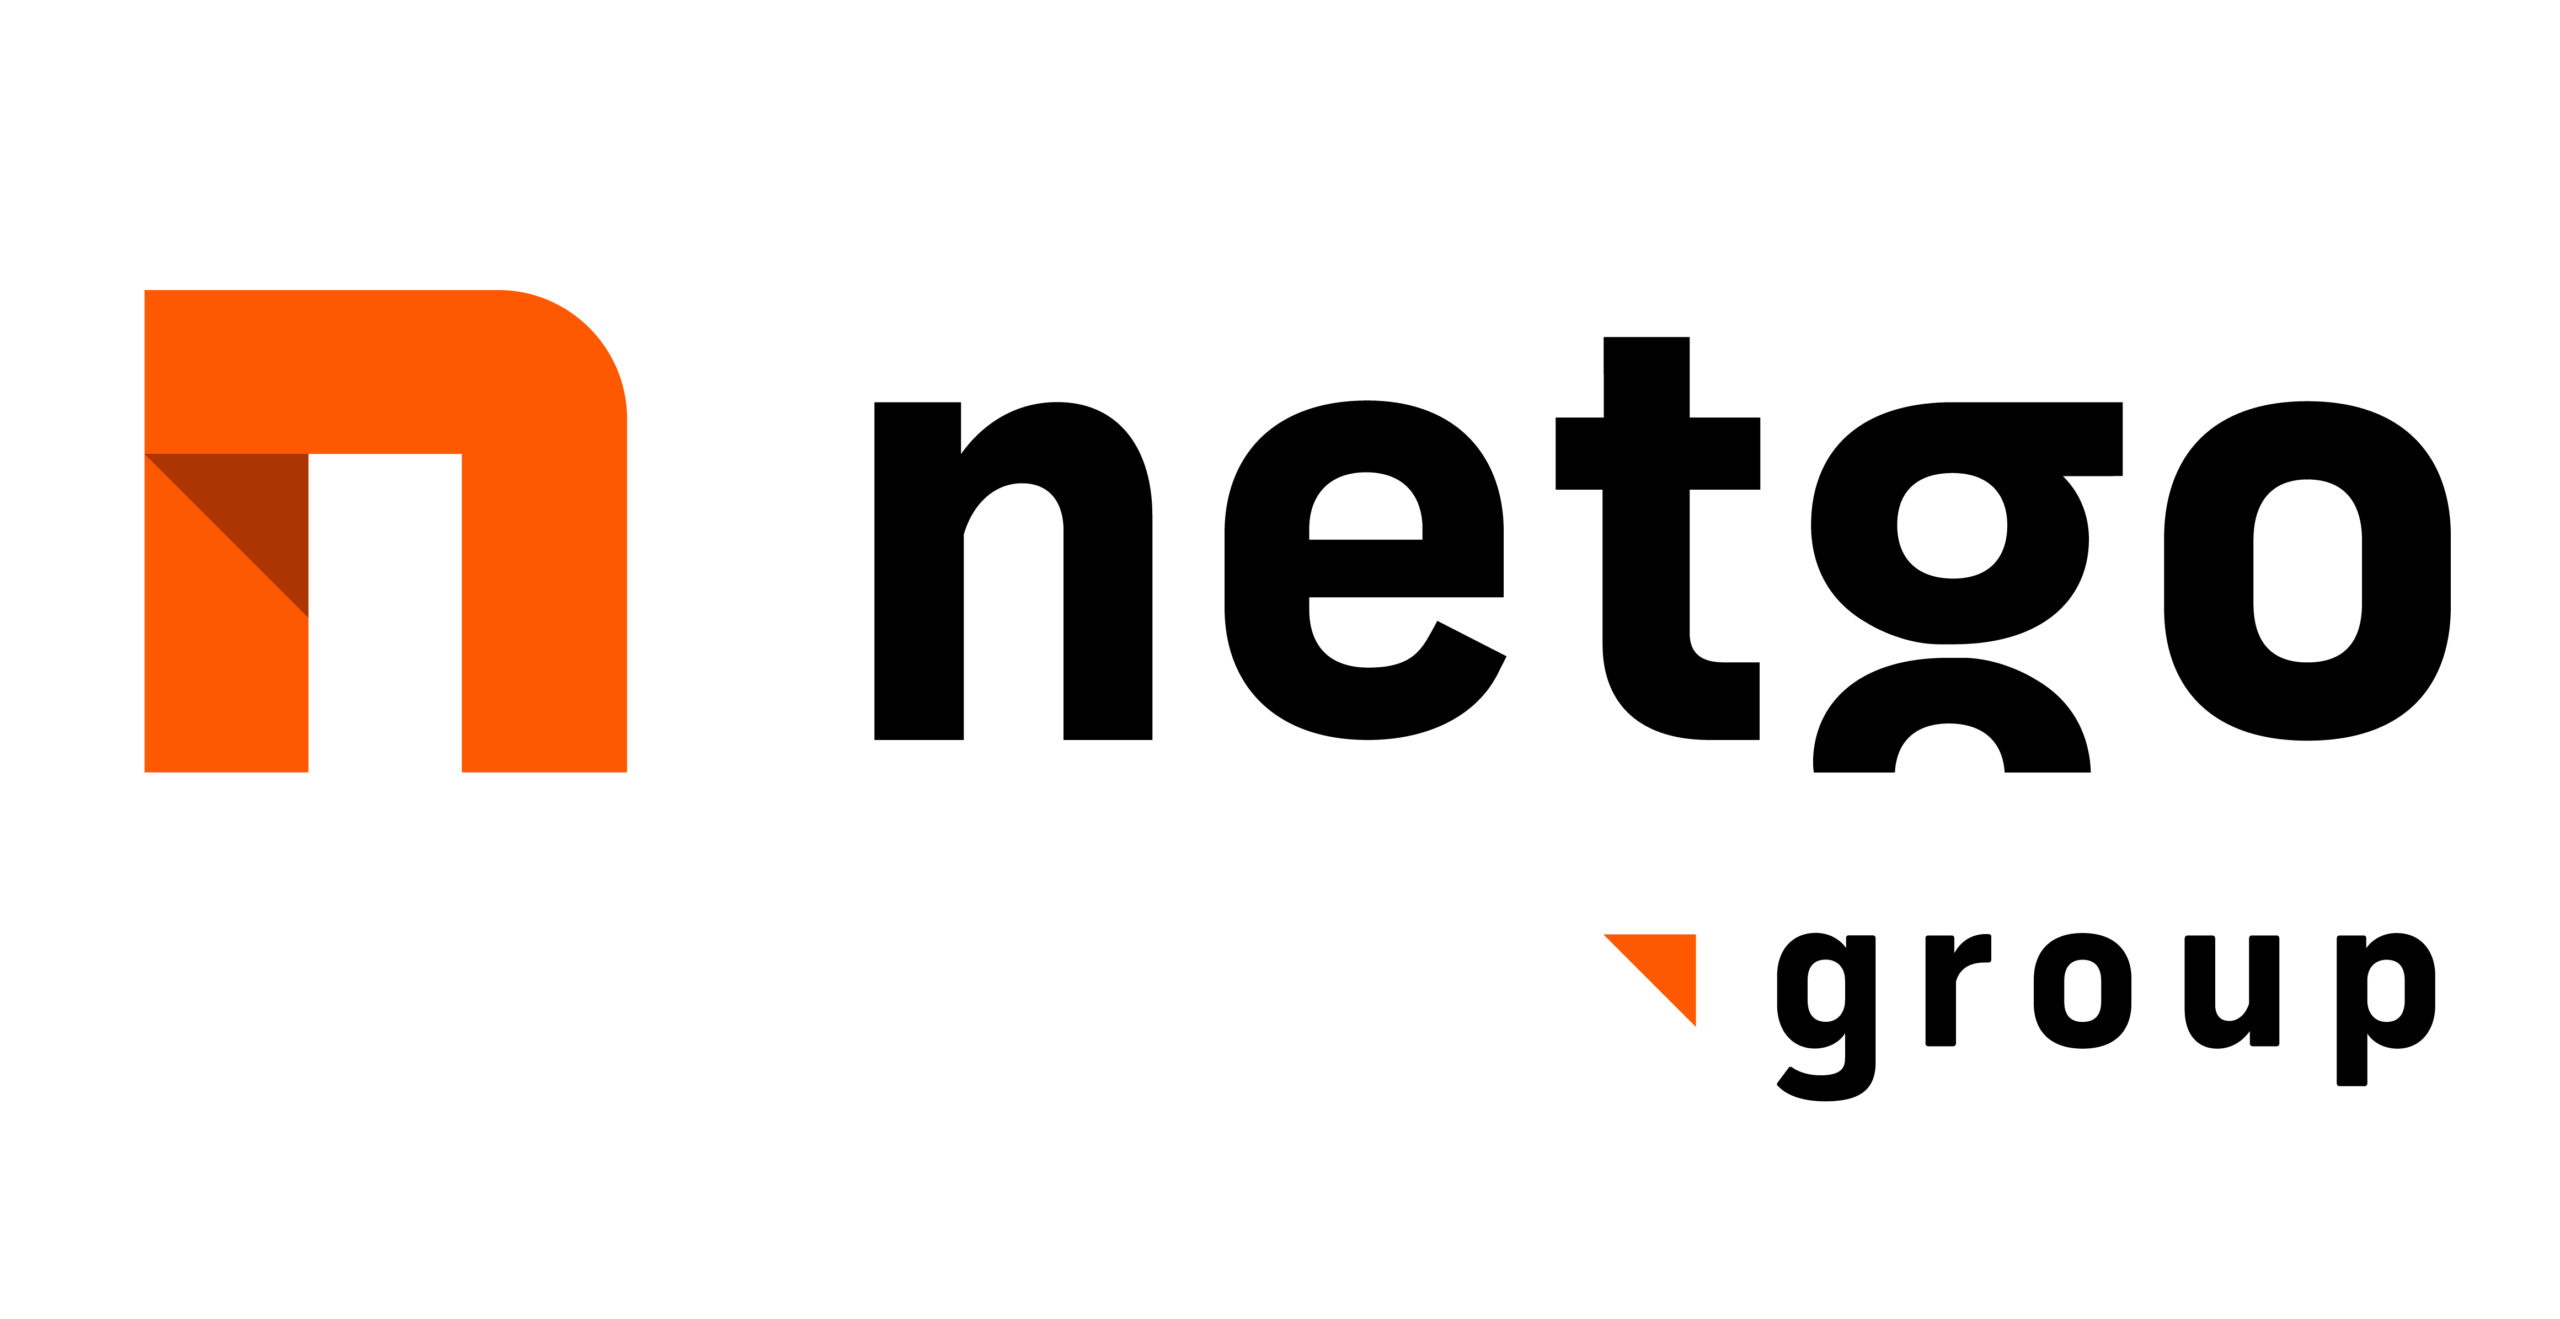 netgo group GmbH